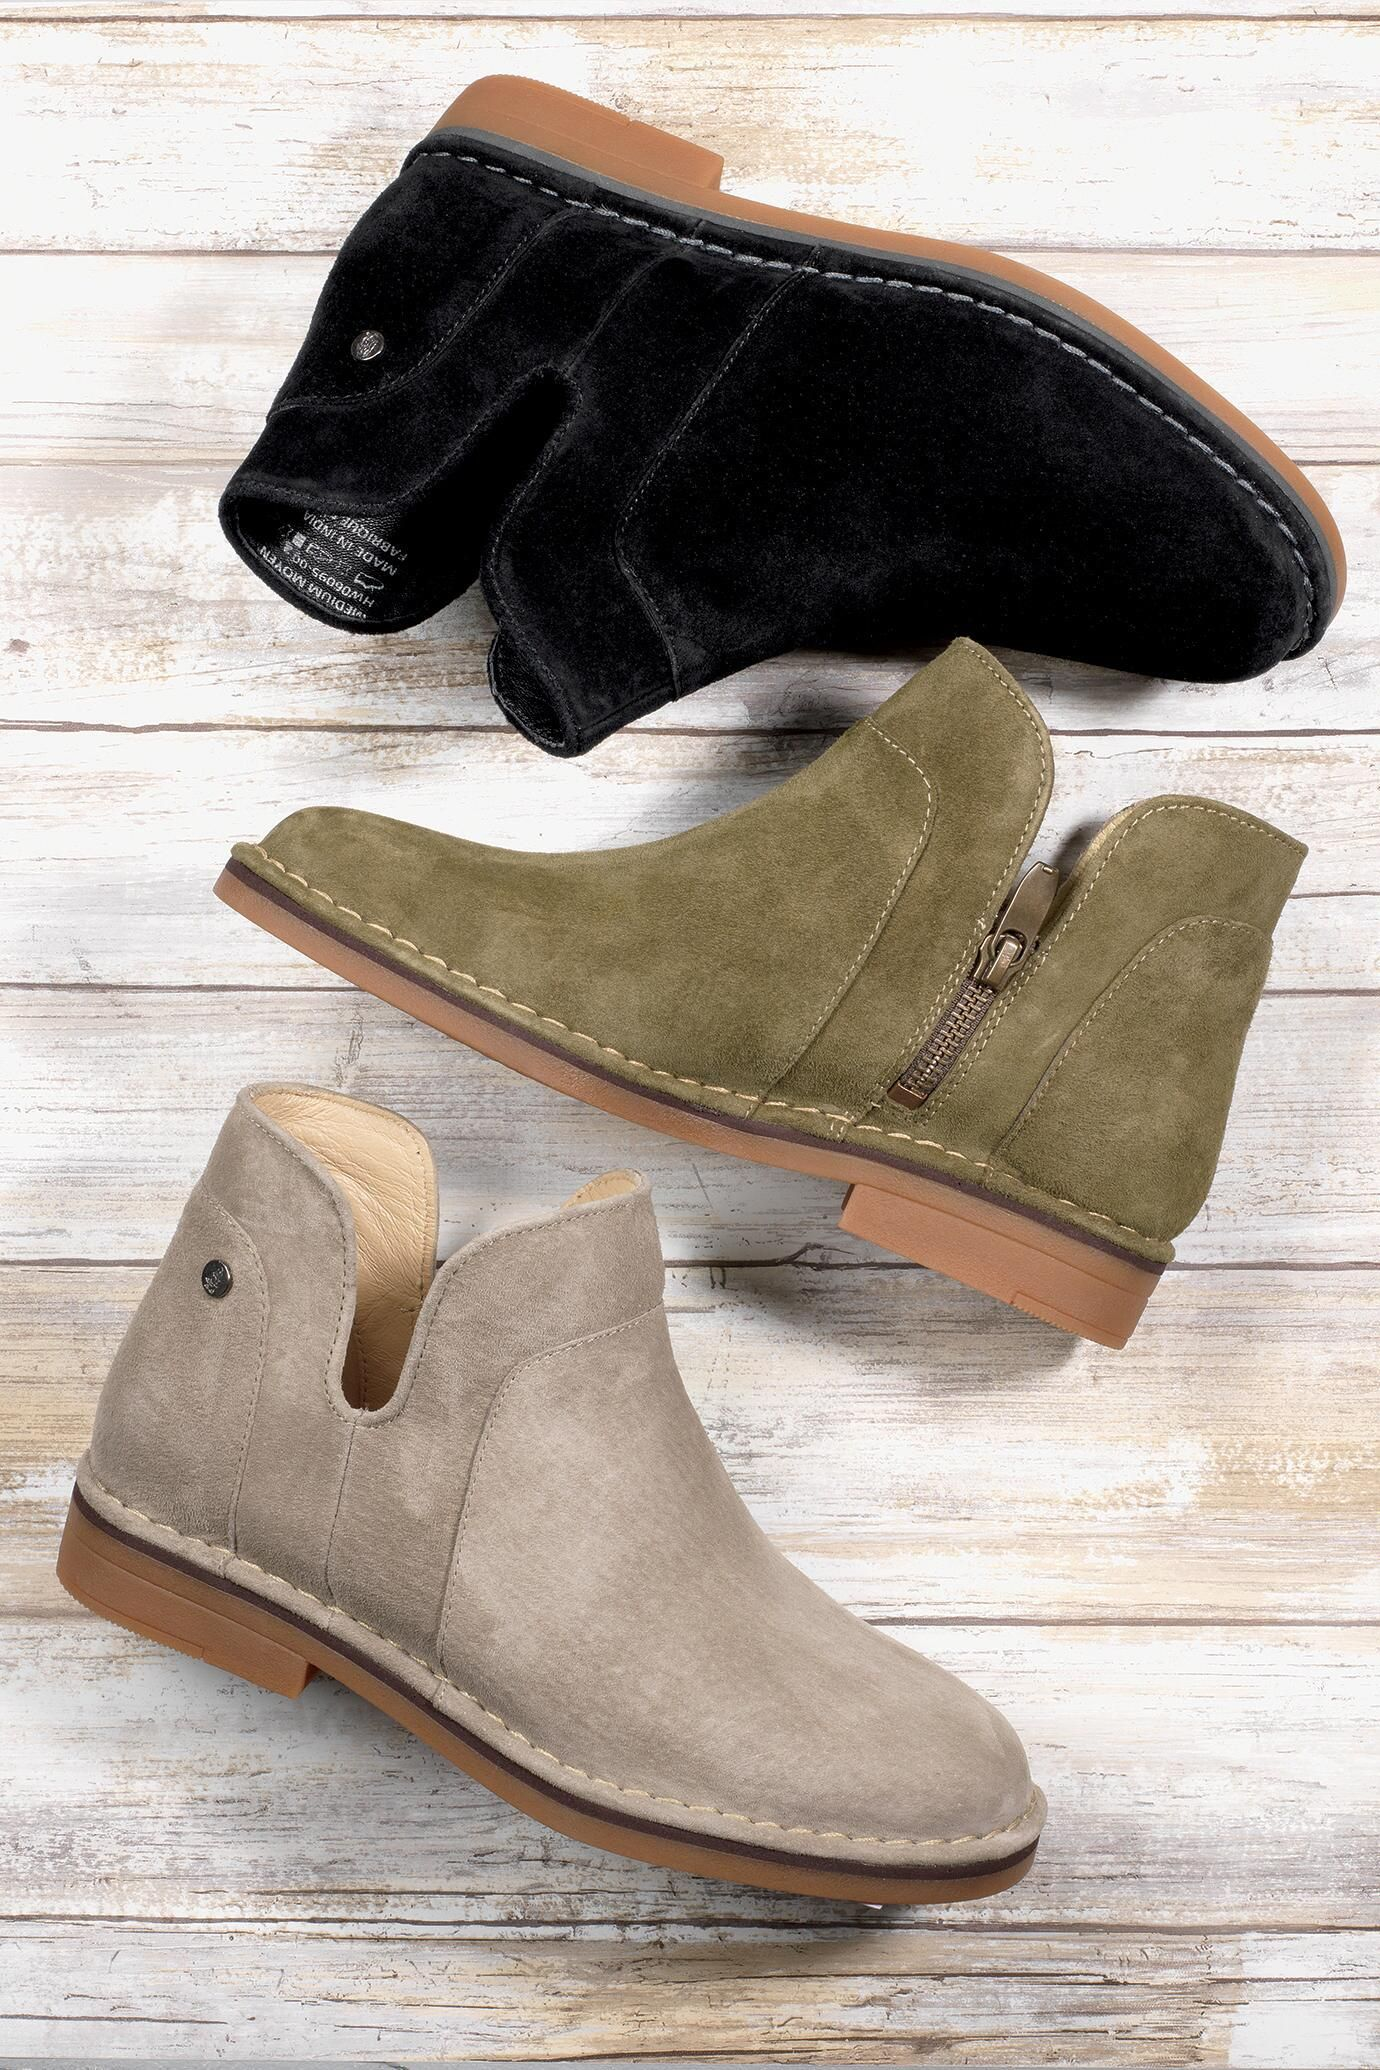 Claudia Catelyn Suede Ankle Boots By Hush Puppies Travelsmith 109 00 Hush Puppies Shoes Women Boots Hush Puppies Boots